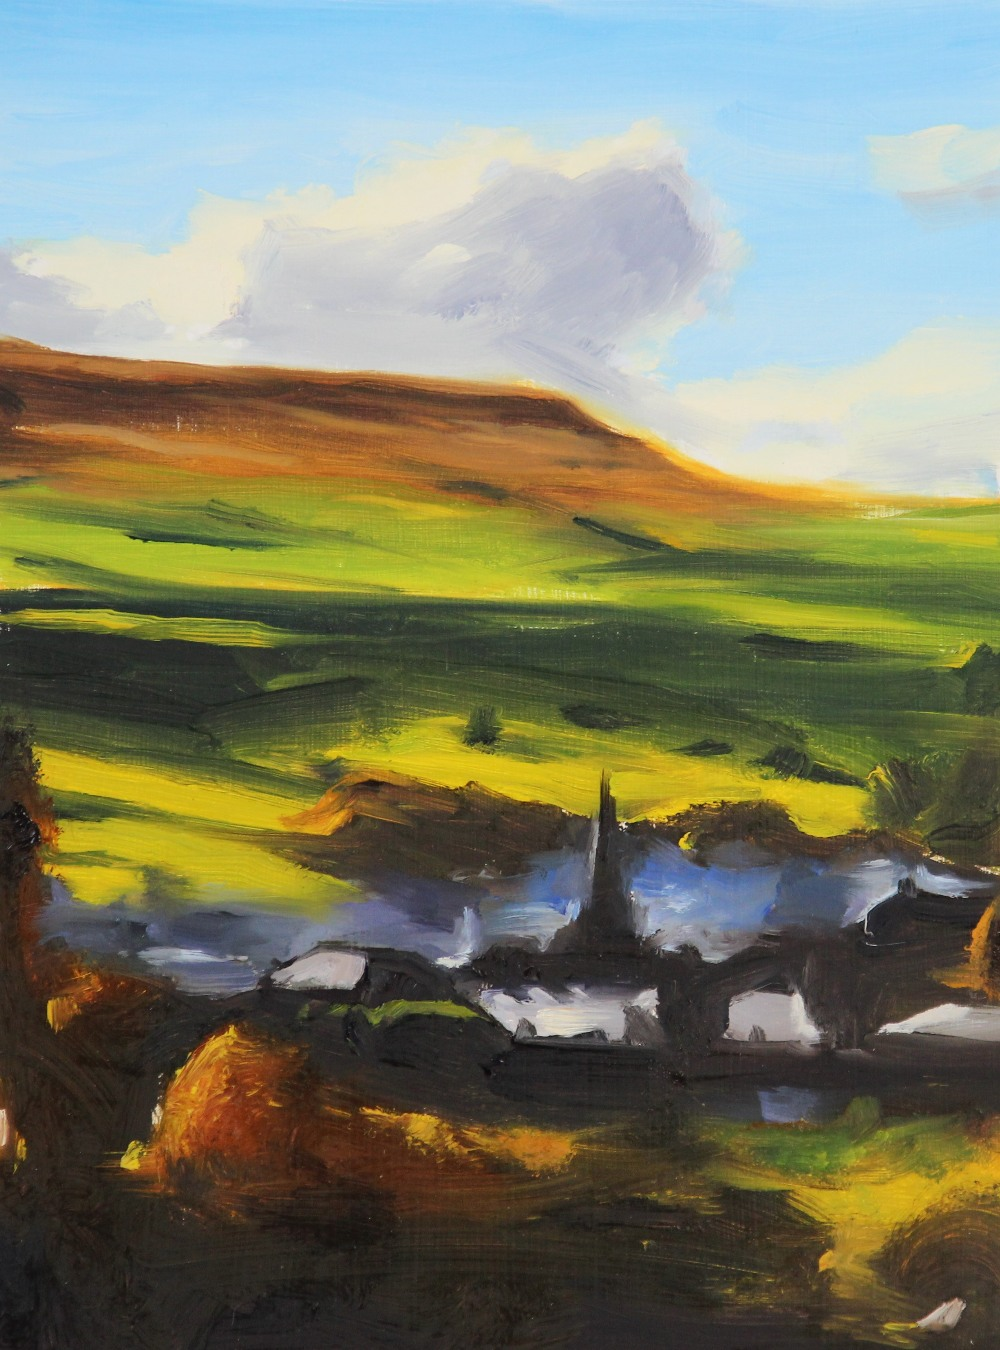 Liam Spencer (Contemporary British, b1964), 'Waterfoot' (2005), Oil on board, Titled and signed